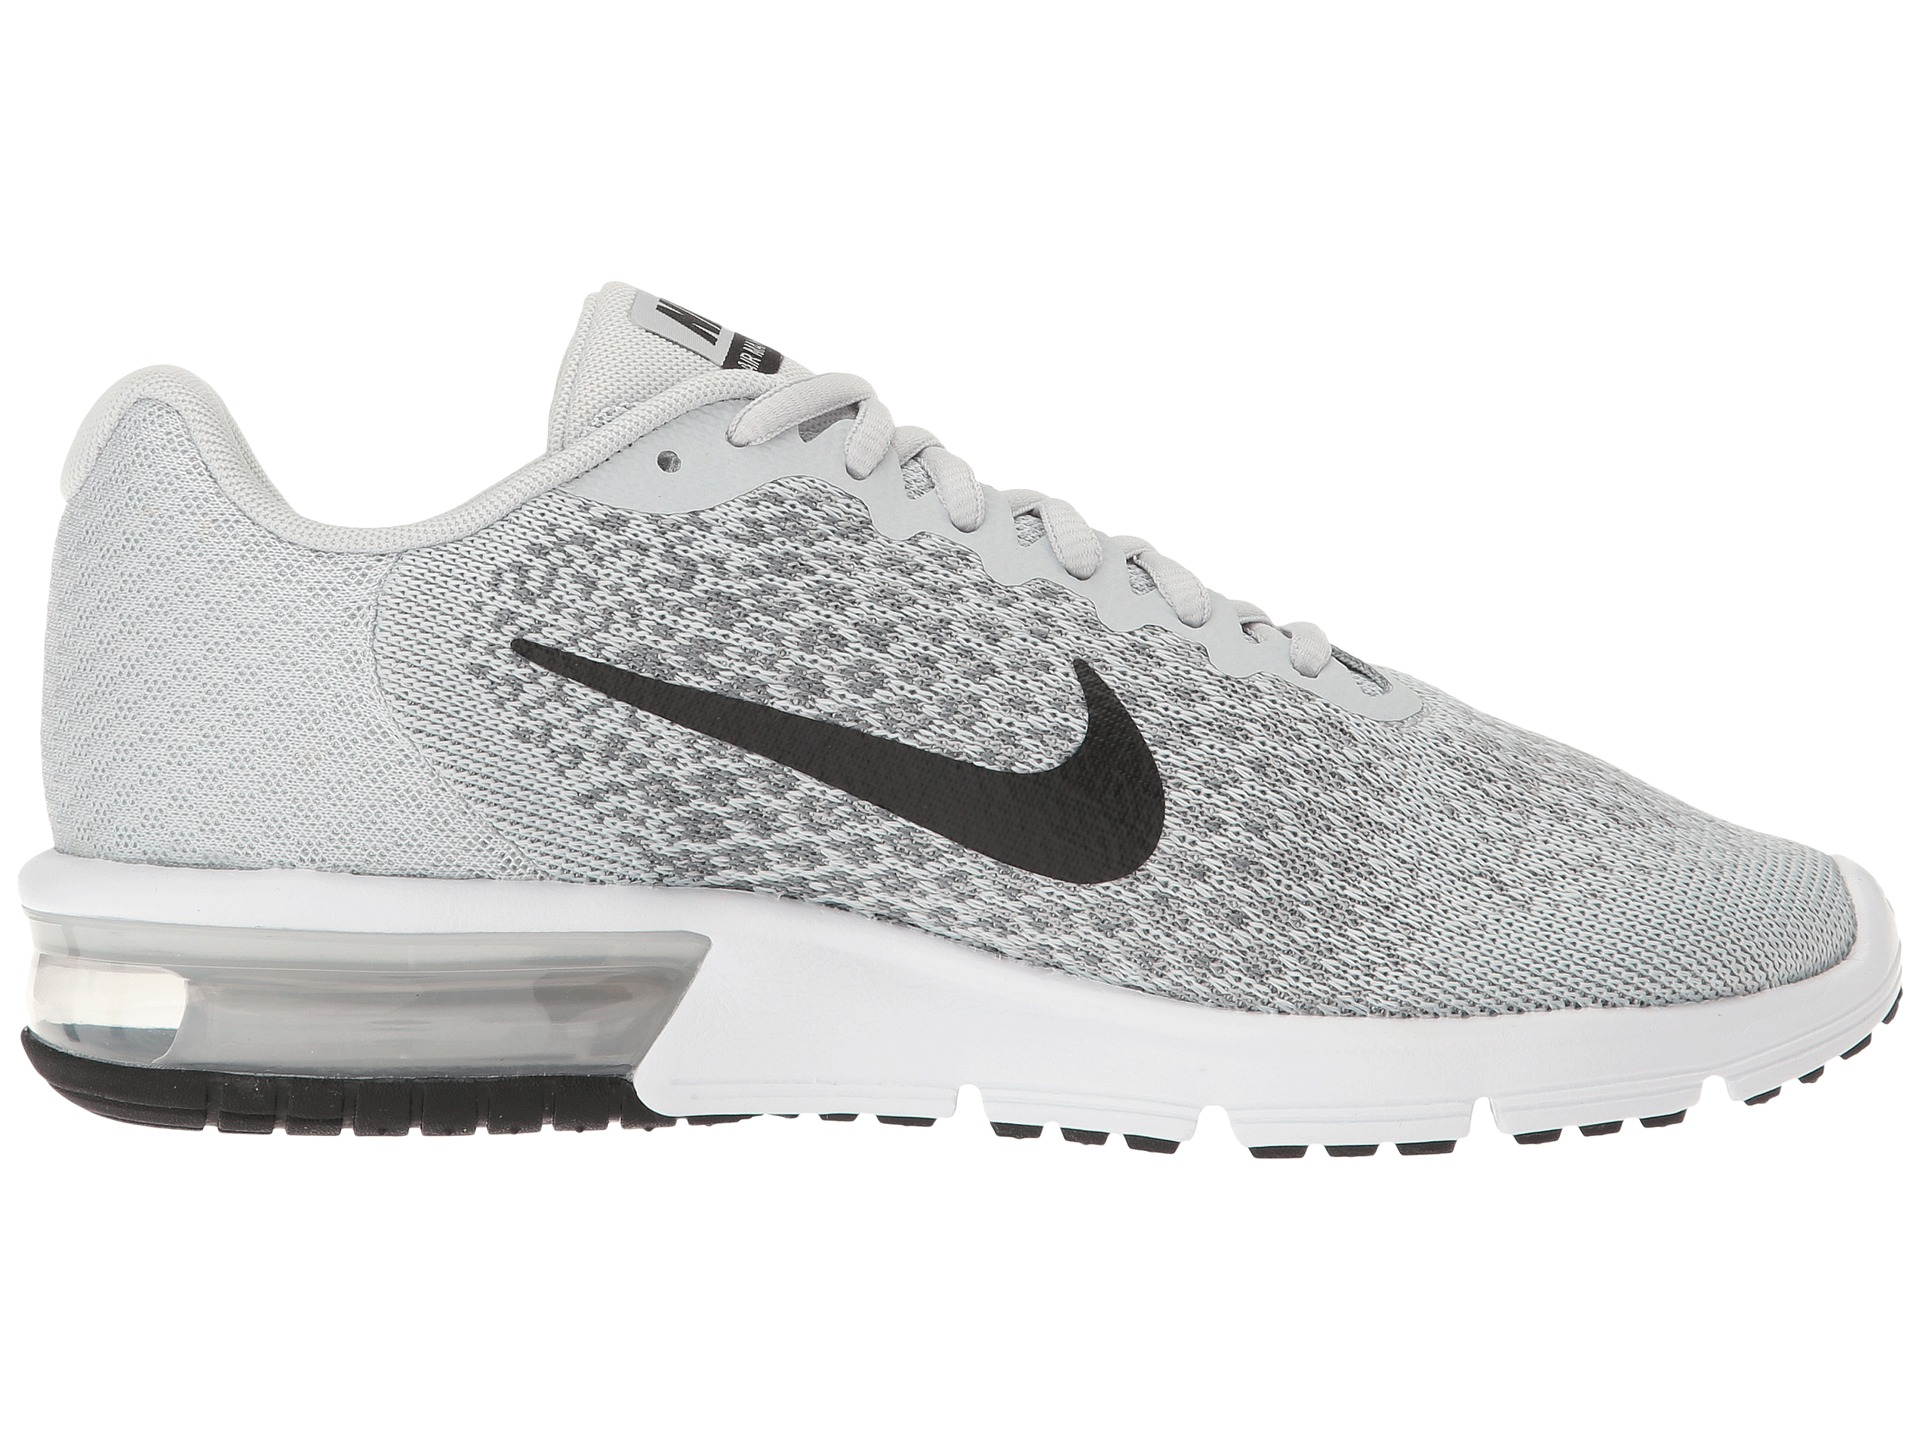 Nike Air Max Sequent 2 At Zappos Com